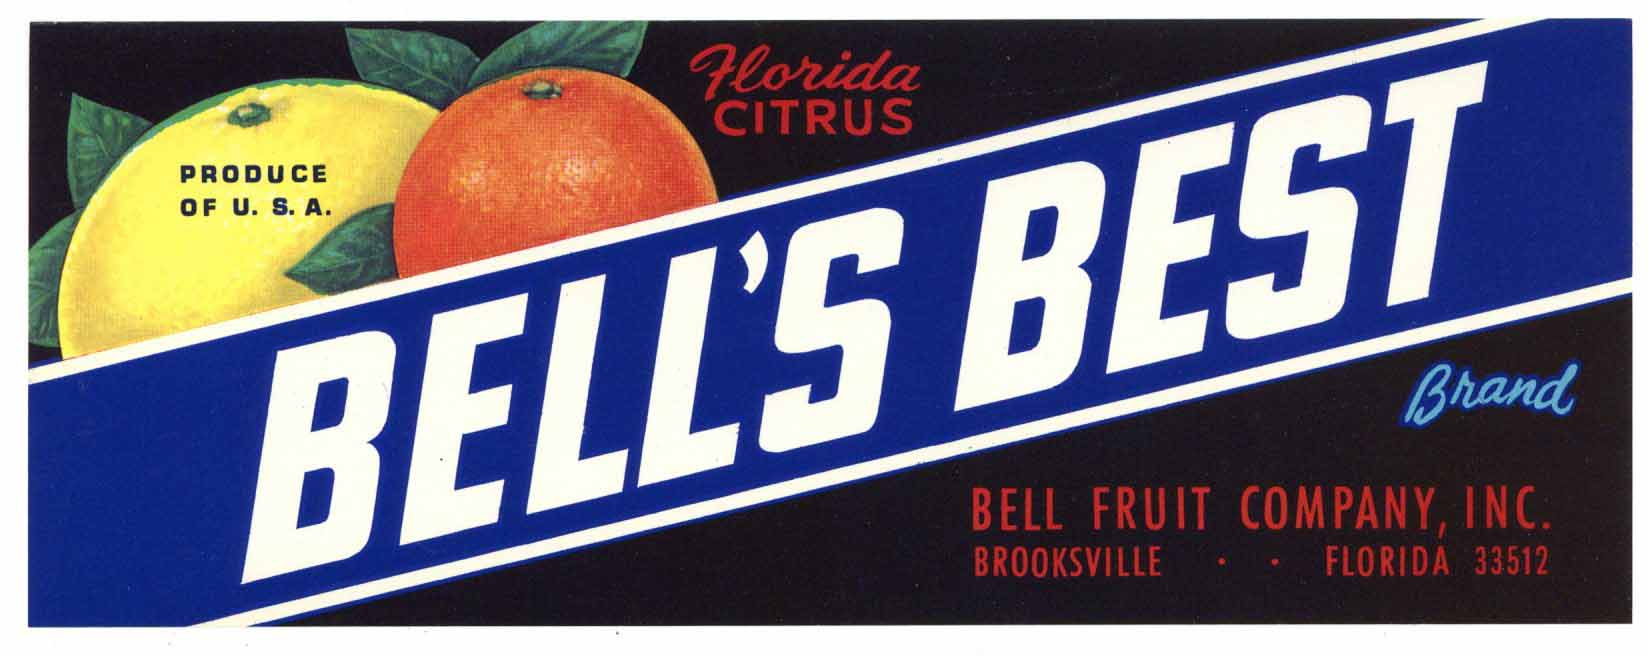 Bell's Best Brand Vintage Brooksville Florida Citrus Crate Label